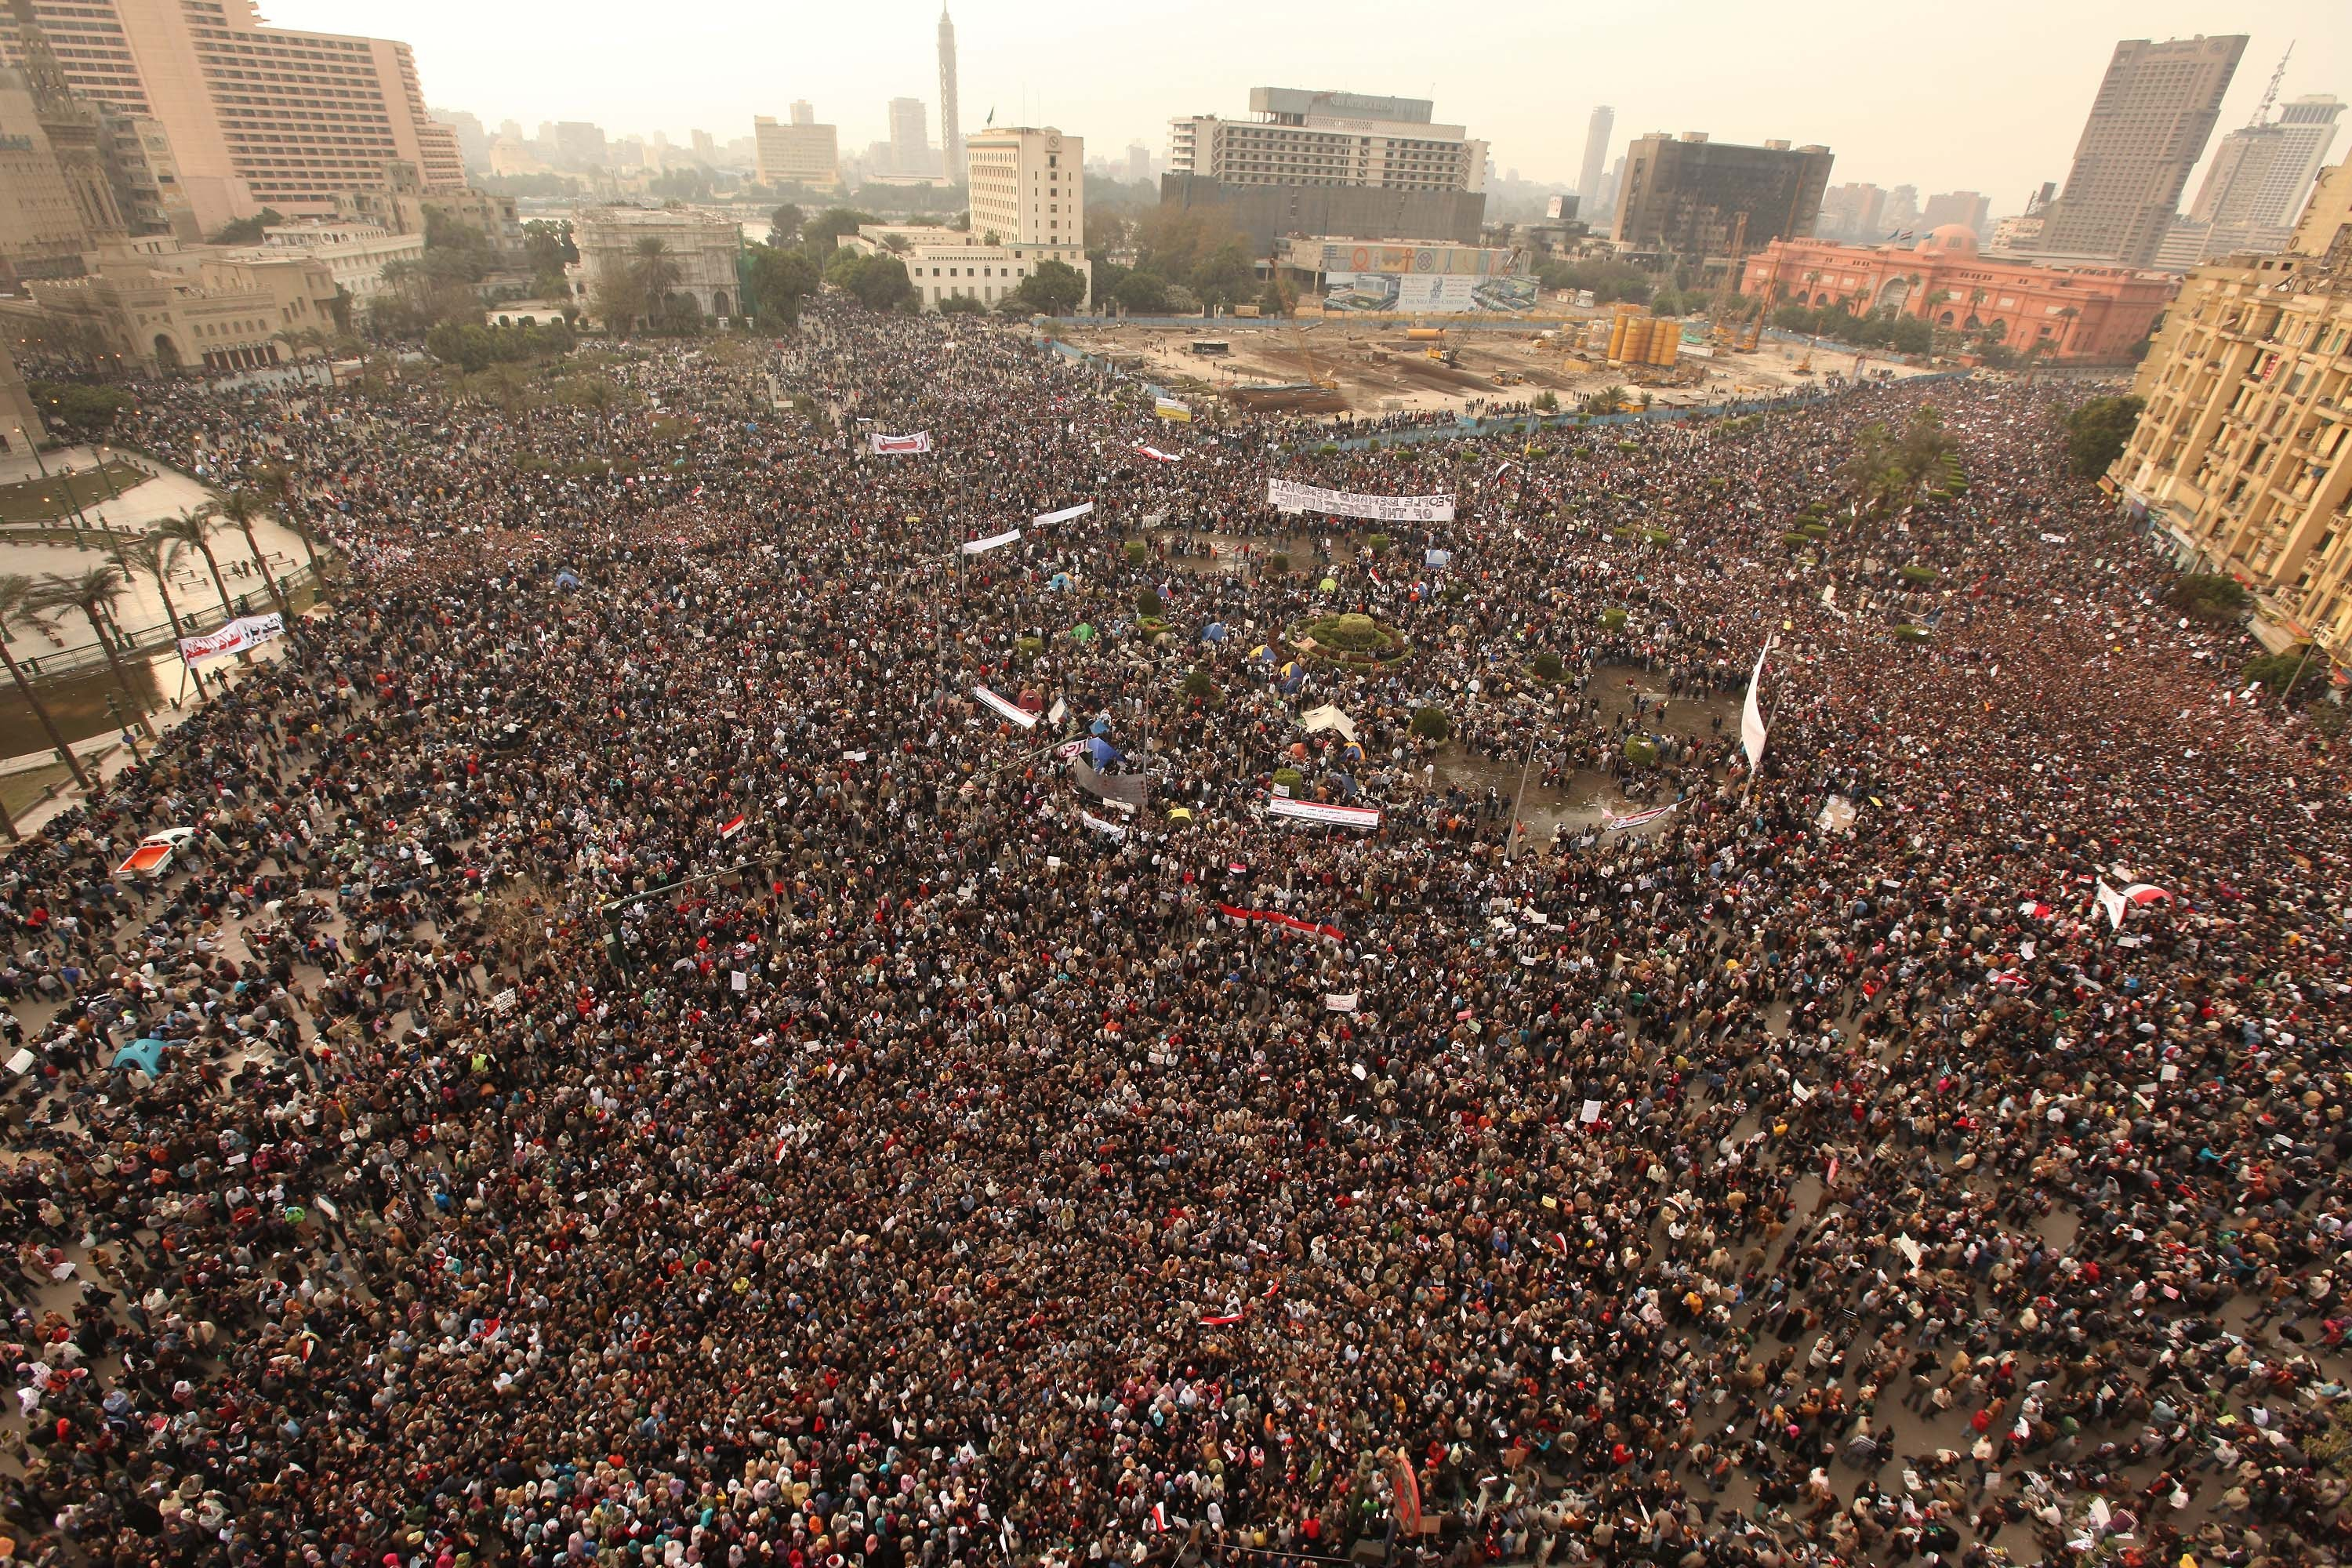 Protestors gather in Tahrir Square as part of an Arab Spring wave demanding the ouster of then Egyptian President Hosni Mubarak, Cairo, Egypt, Feb. 1, 2011. (Photo by Getty Images)